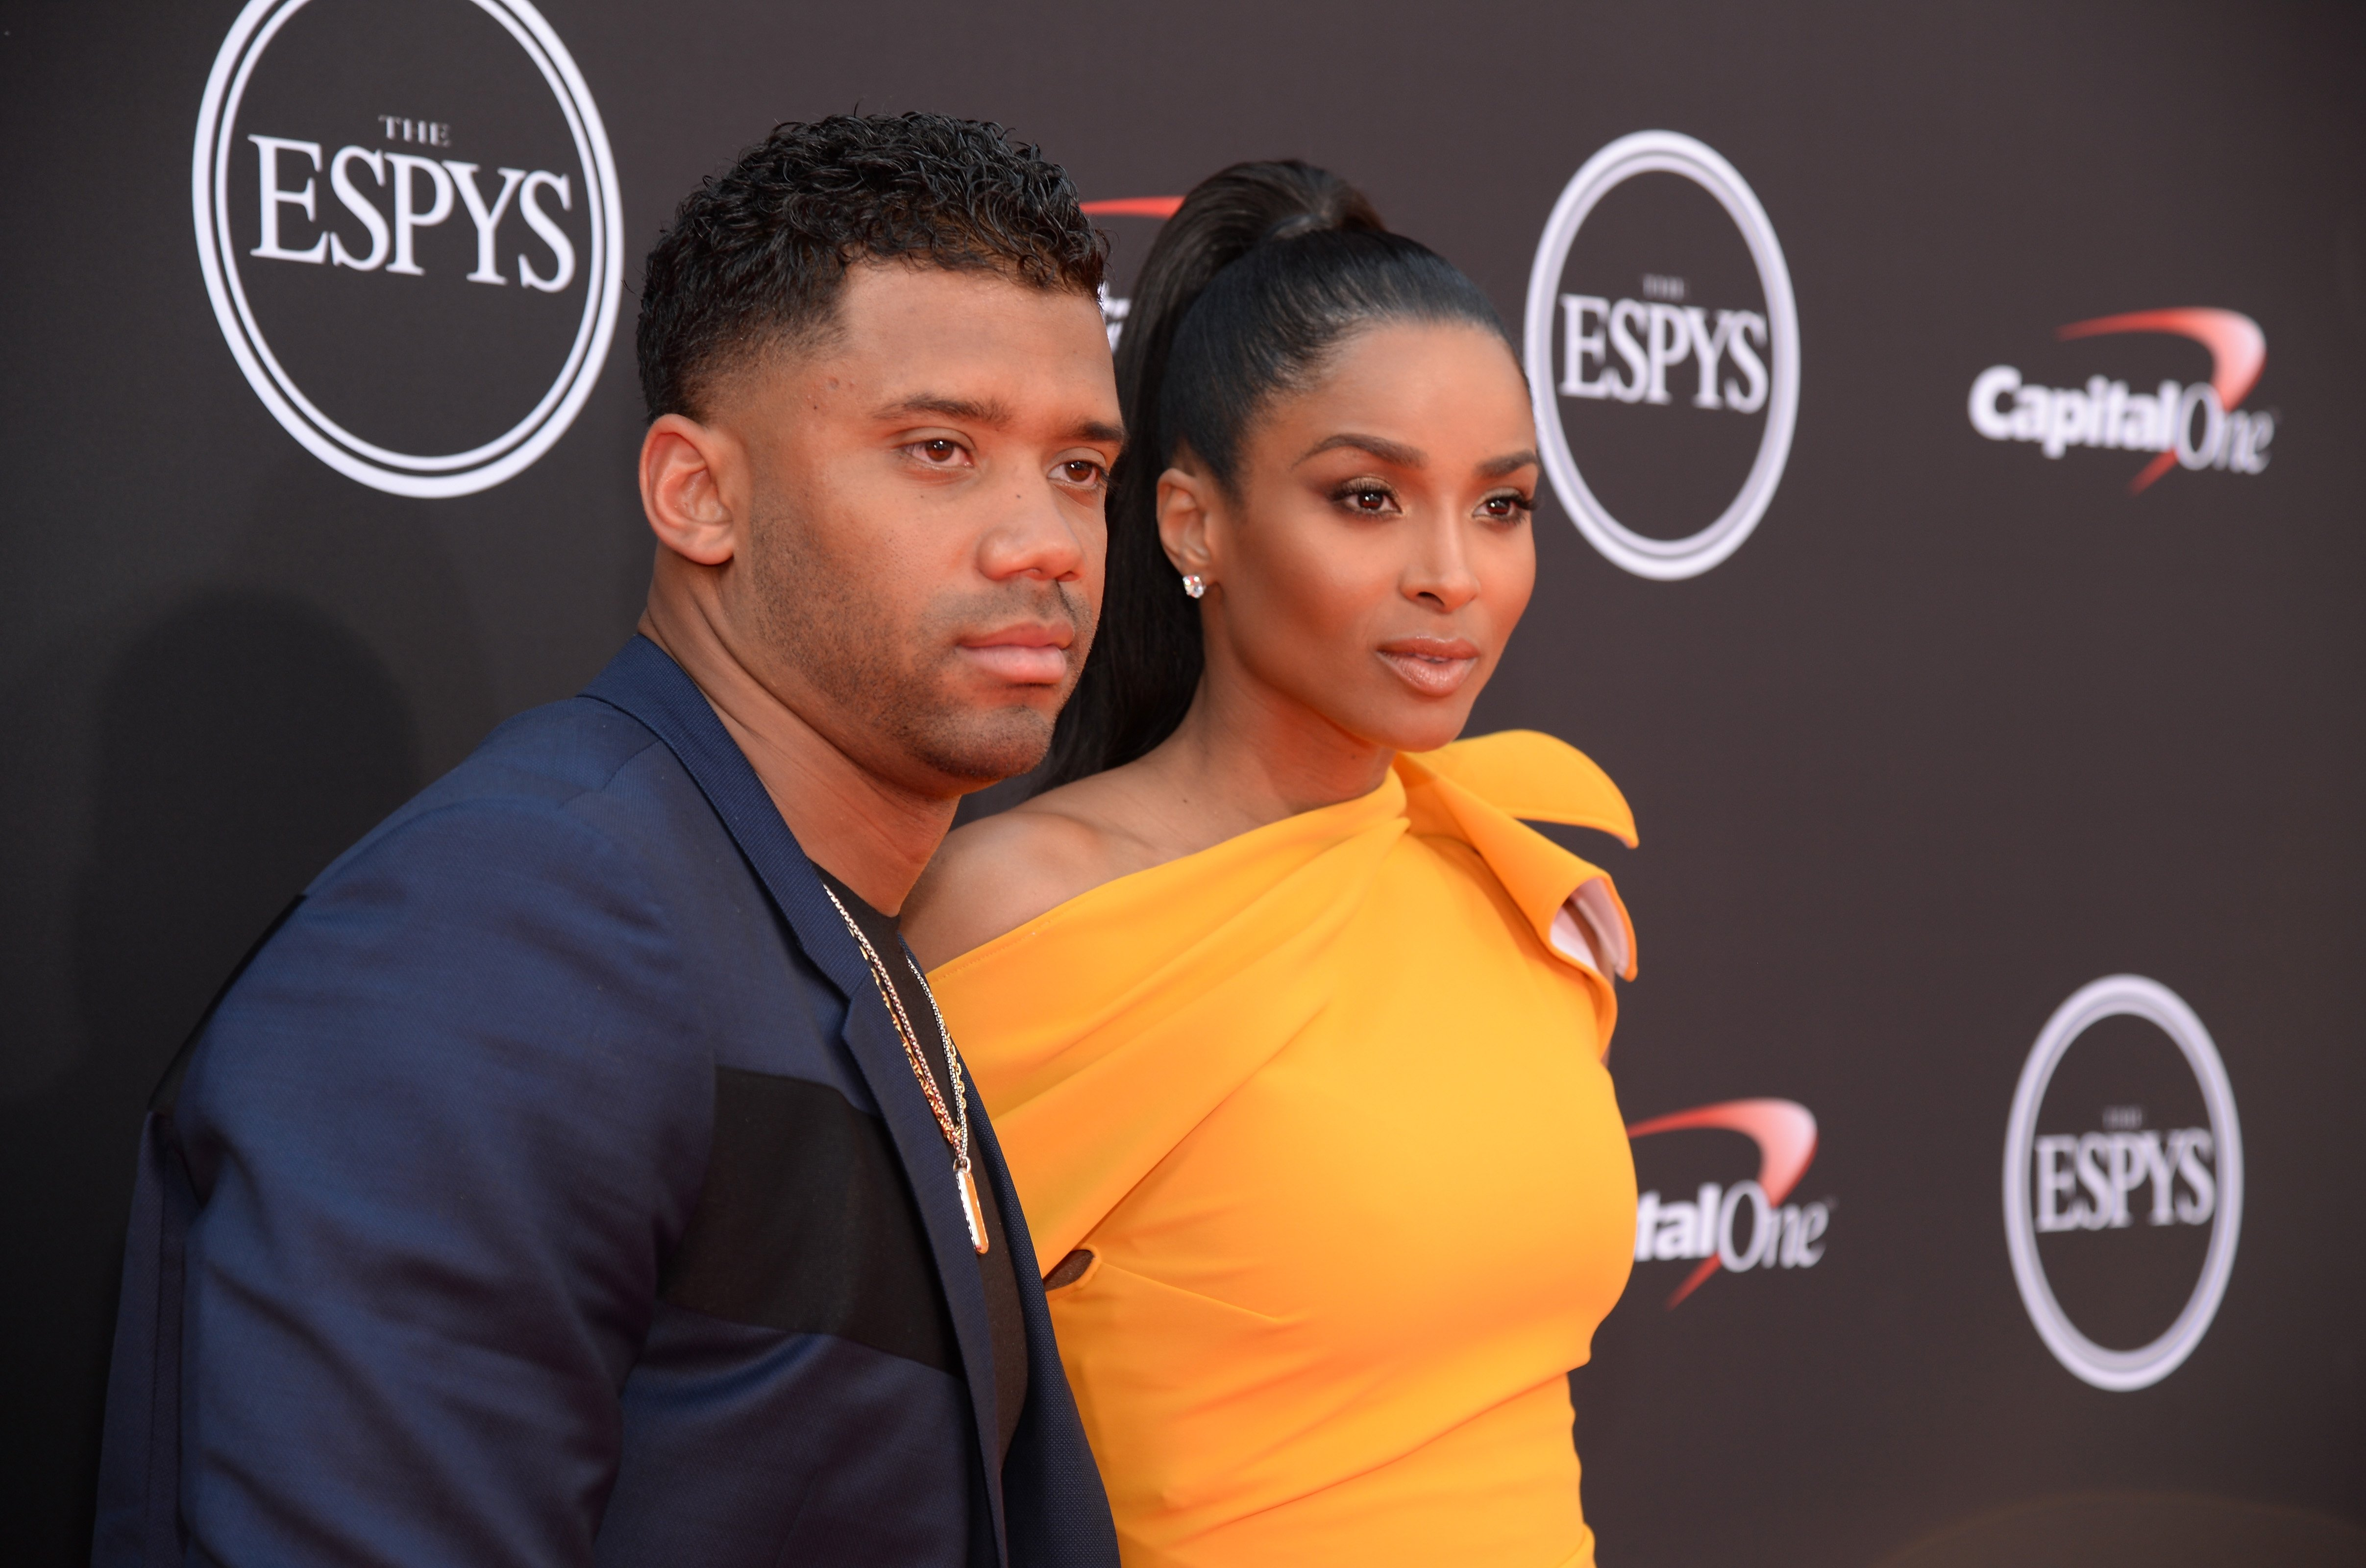 Ciara and Russell Wilson at the 2018 ESPY Awards red carpet live show on July 18, 2018 in Los Angeles, California.| Source: Getty Images